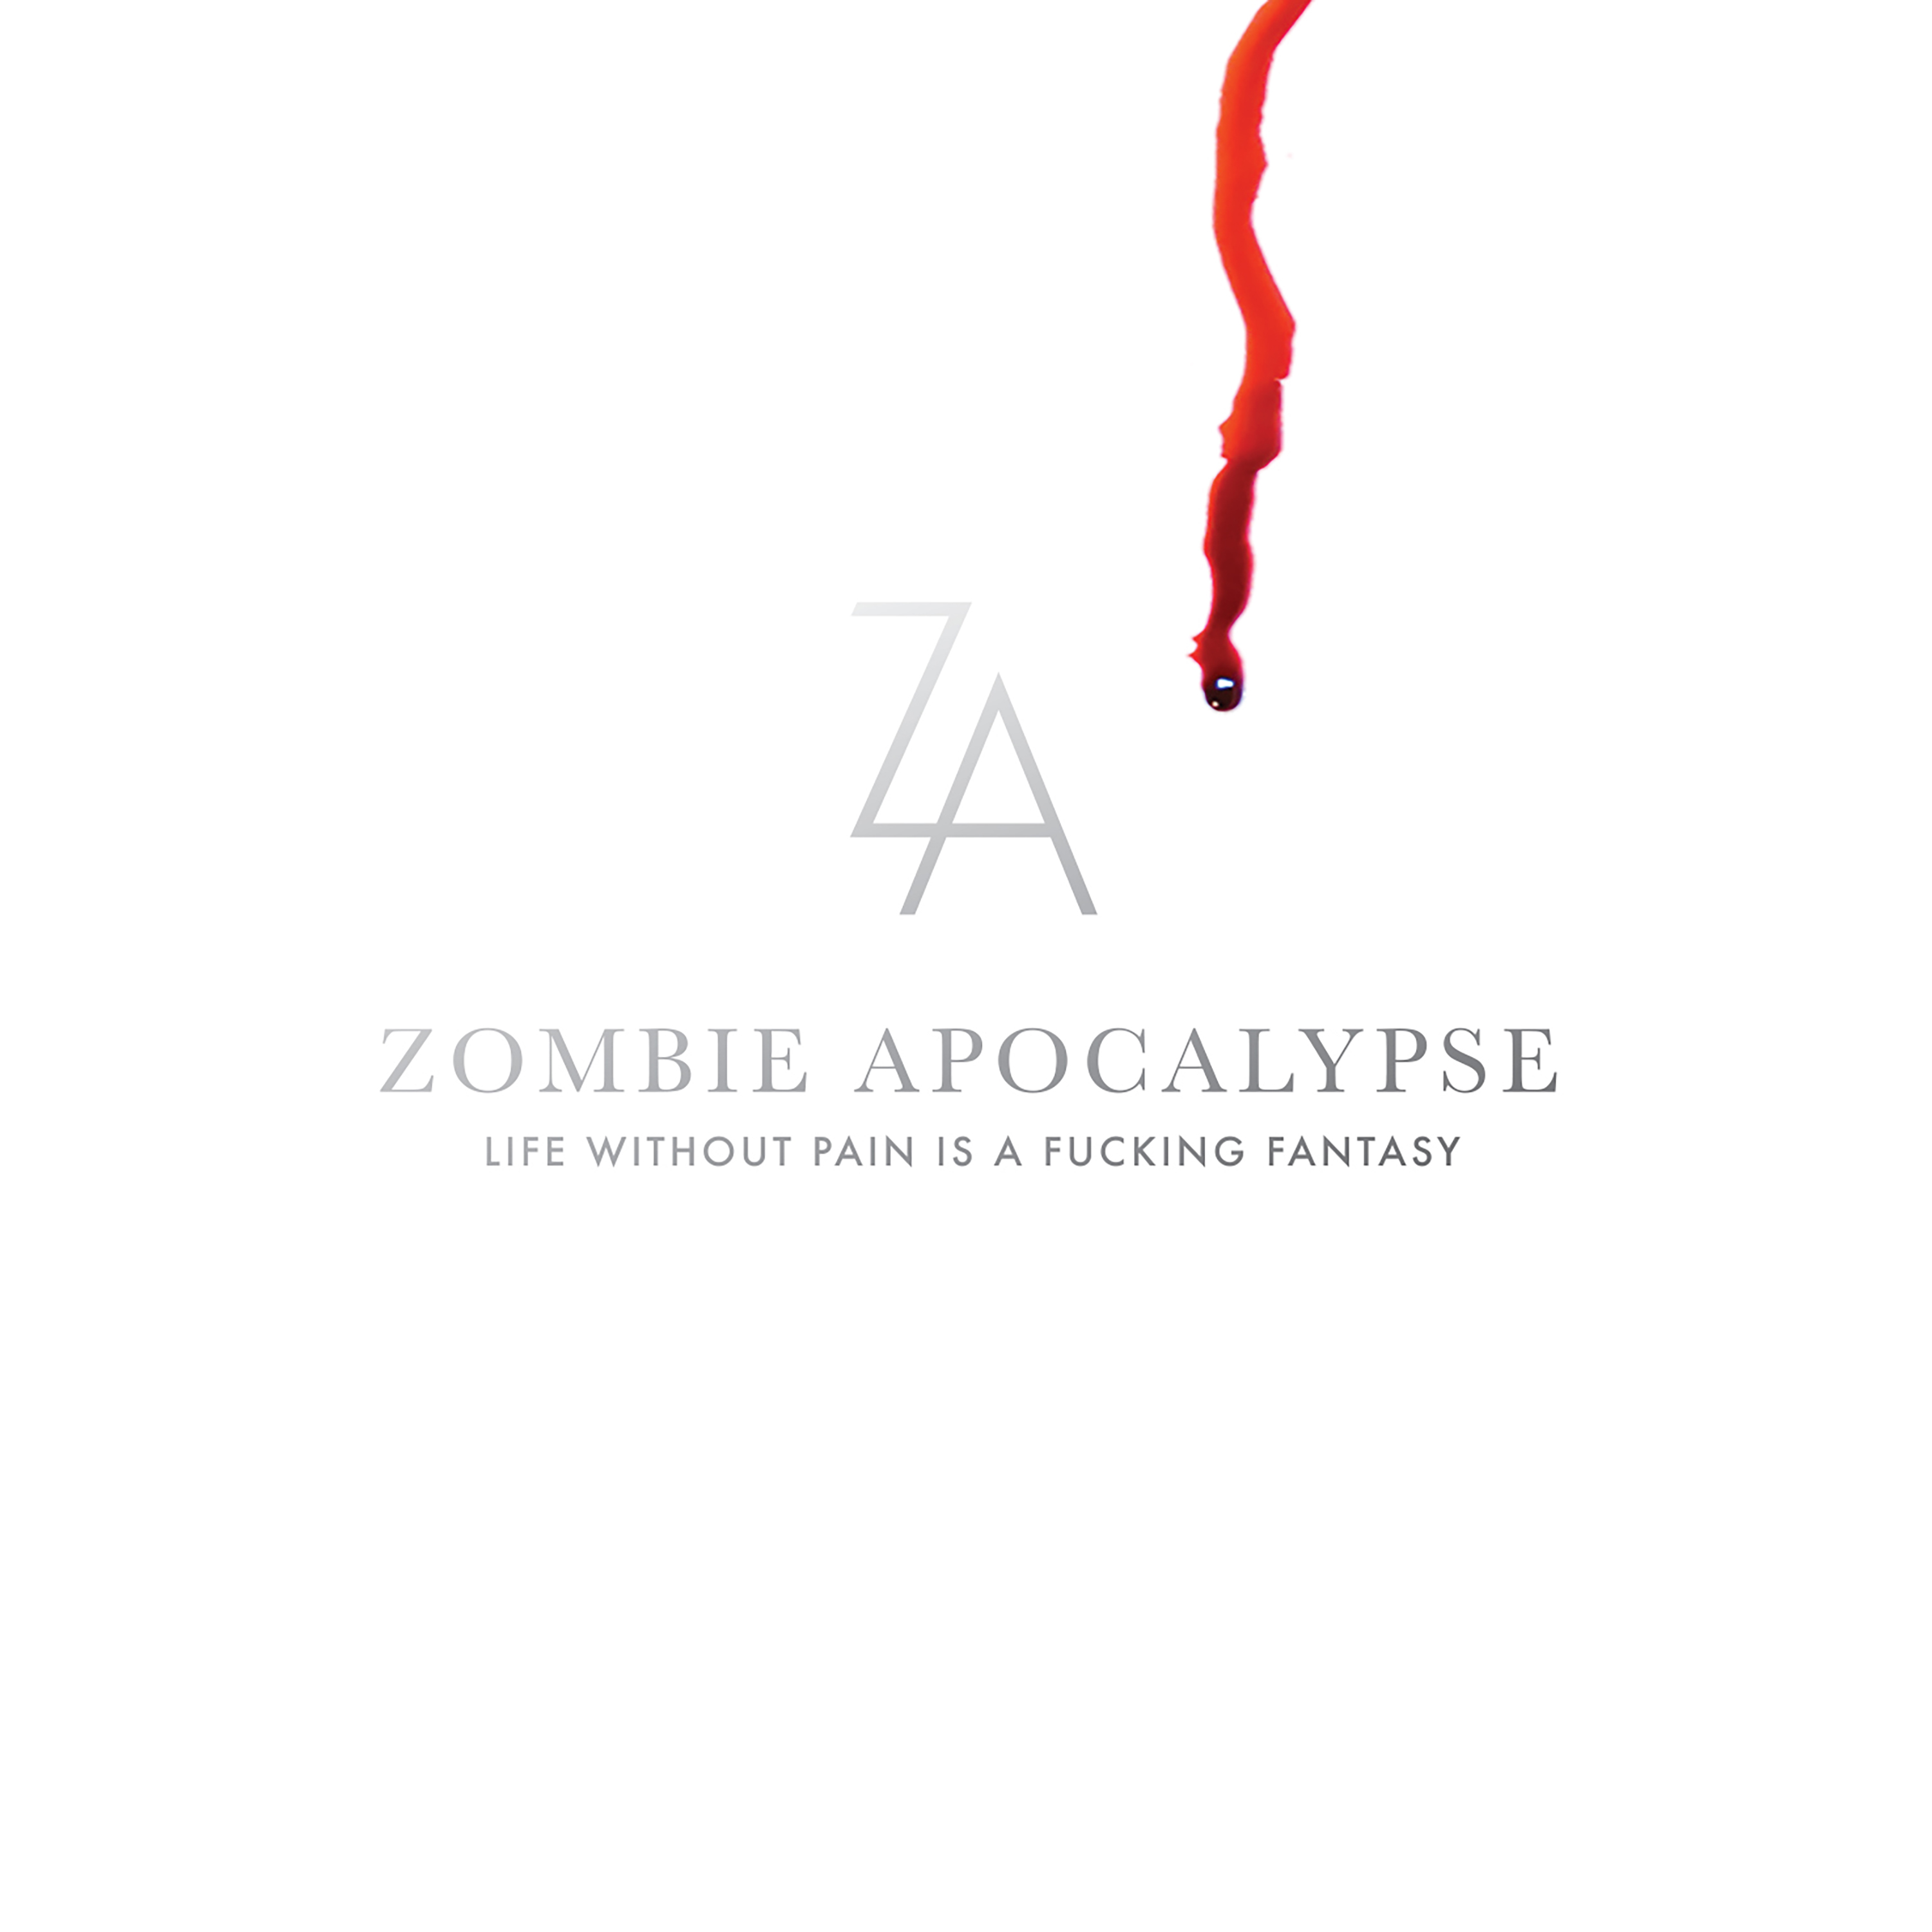 Zombie Apocalypse Announce a Brand New EP for Release this Summer